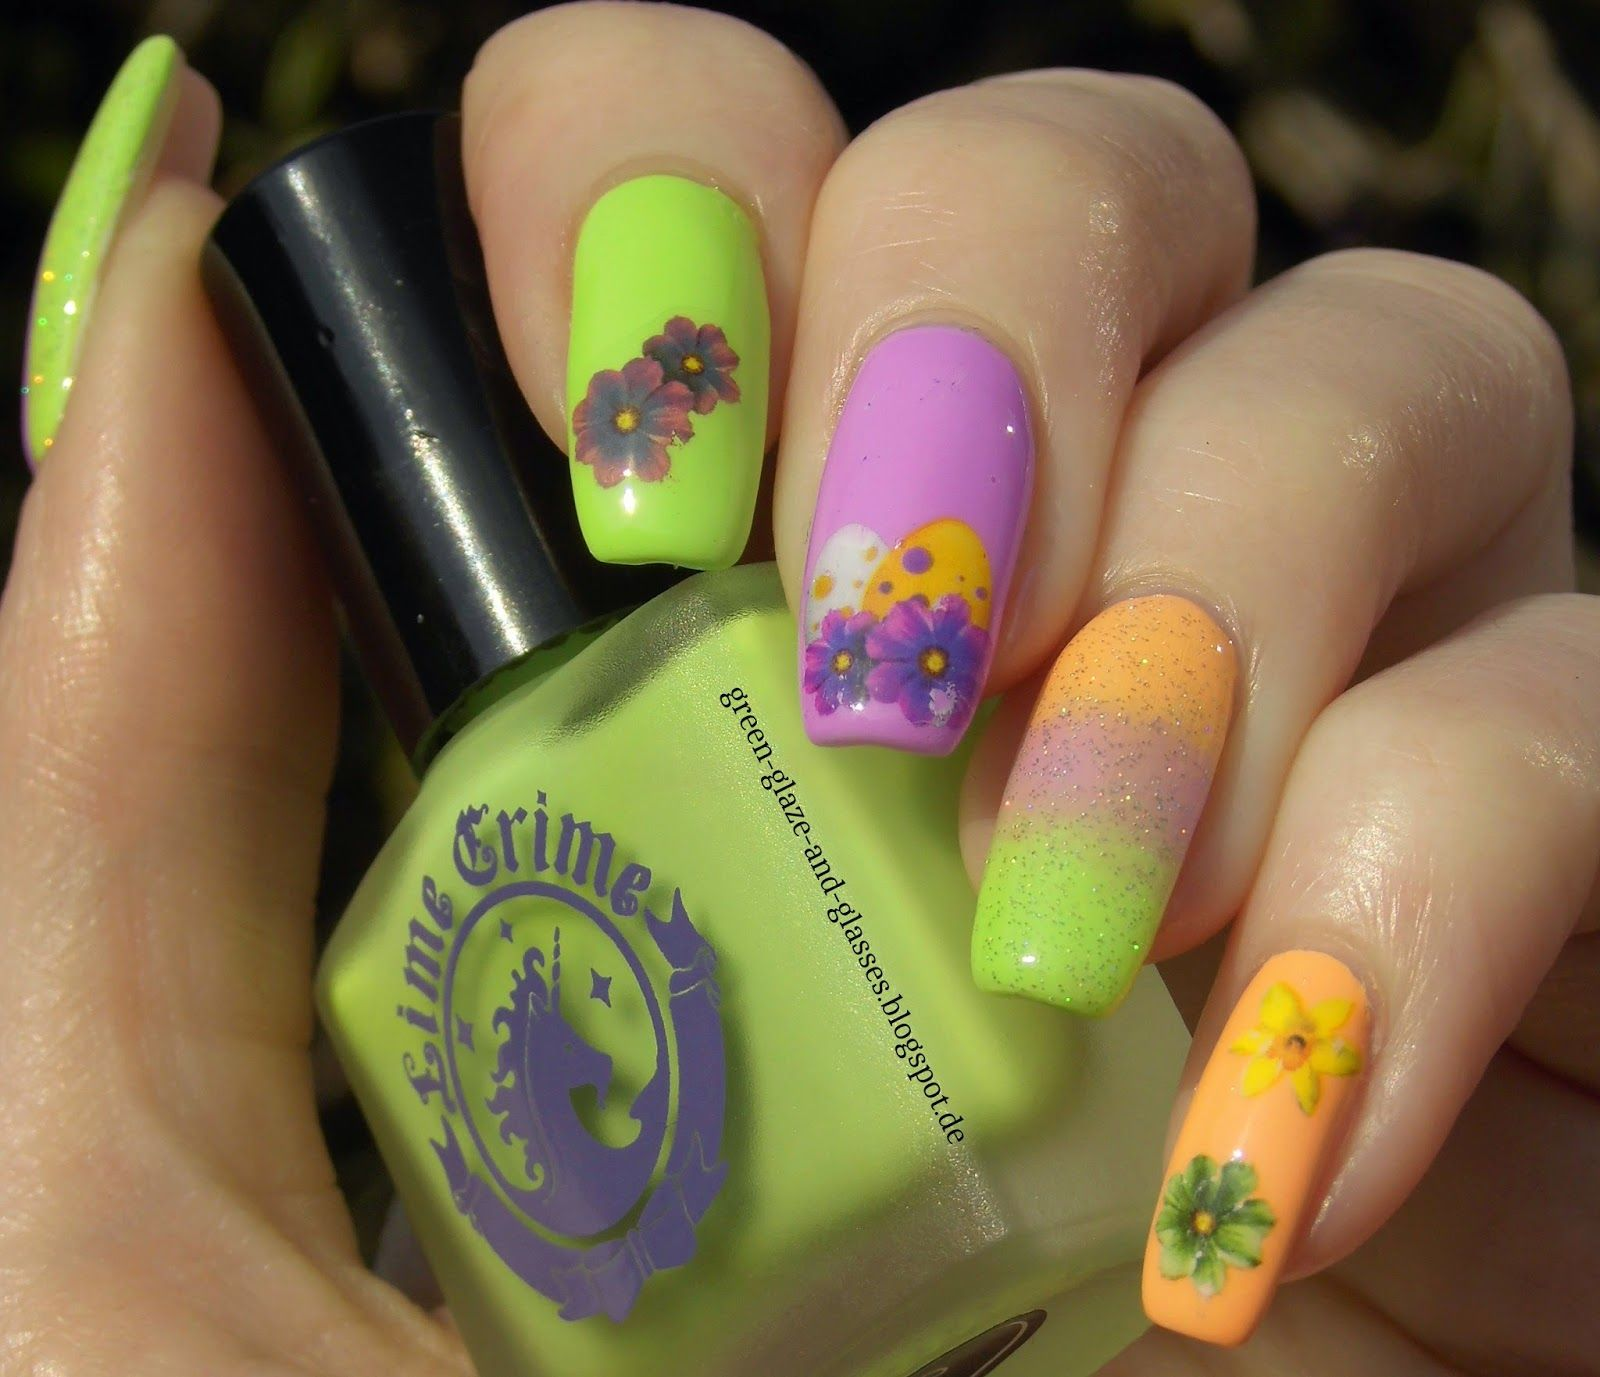 Green, Glaze & Glasses: Eggcellent Ideas - Oster Themenwoche - Österliches Nageldesign (Easter Nail Design - Lime Crime Pastelchio, Lime Crime Peach Cream and Color Club + China Glaze Fairy Dust)